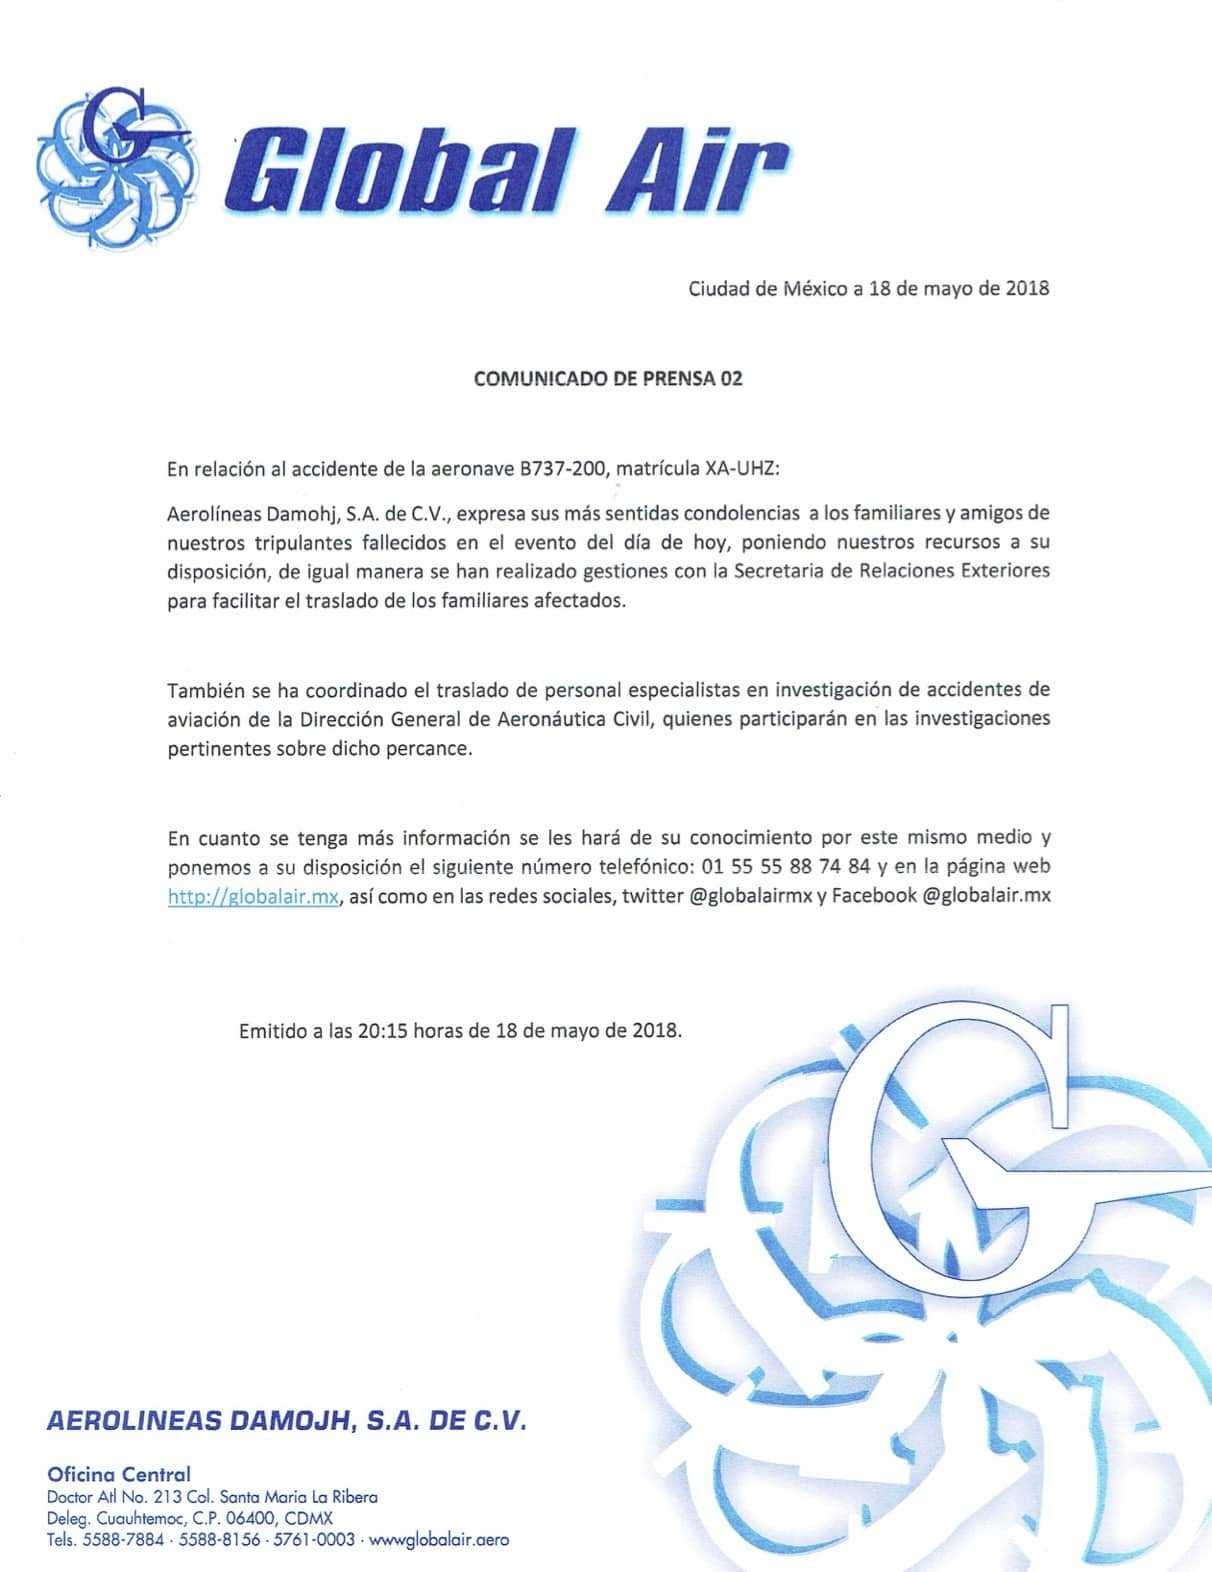 press-release-global-air